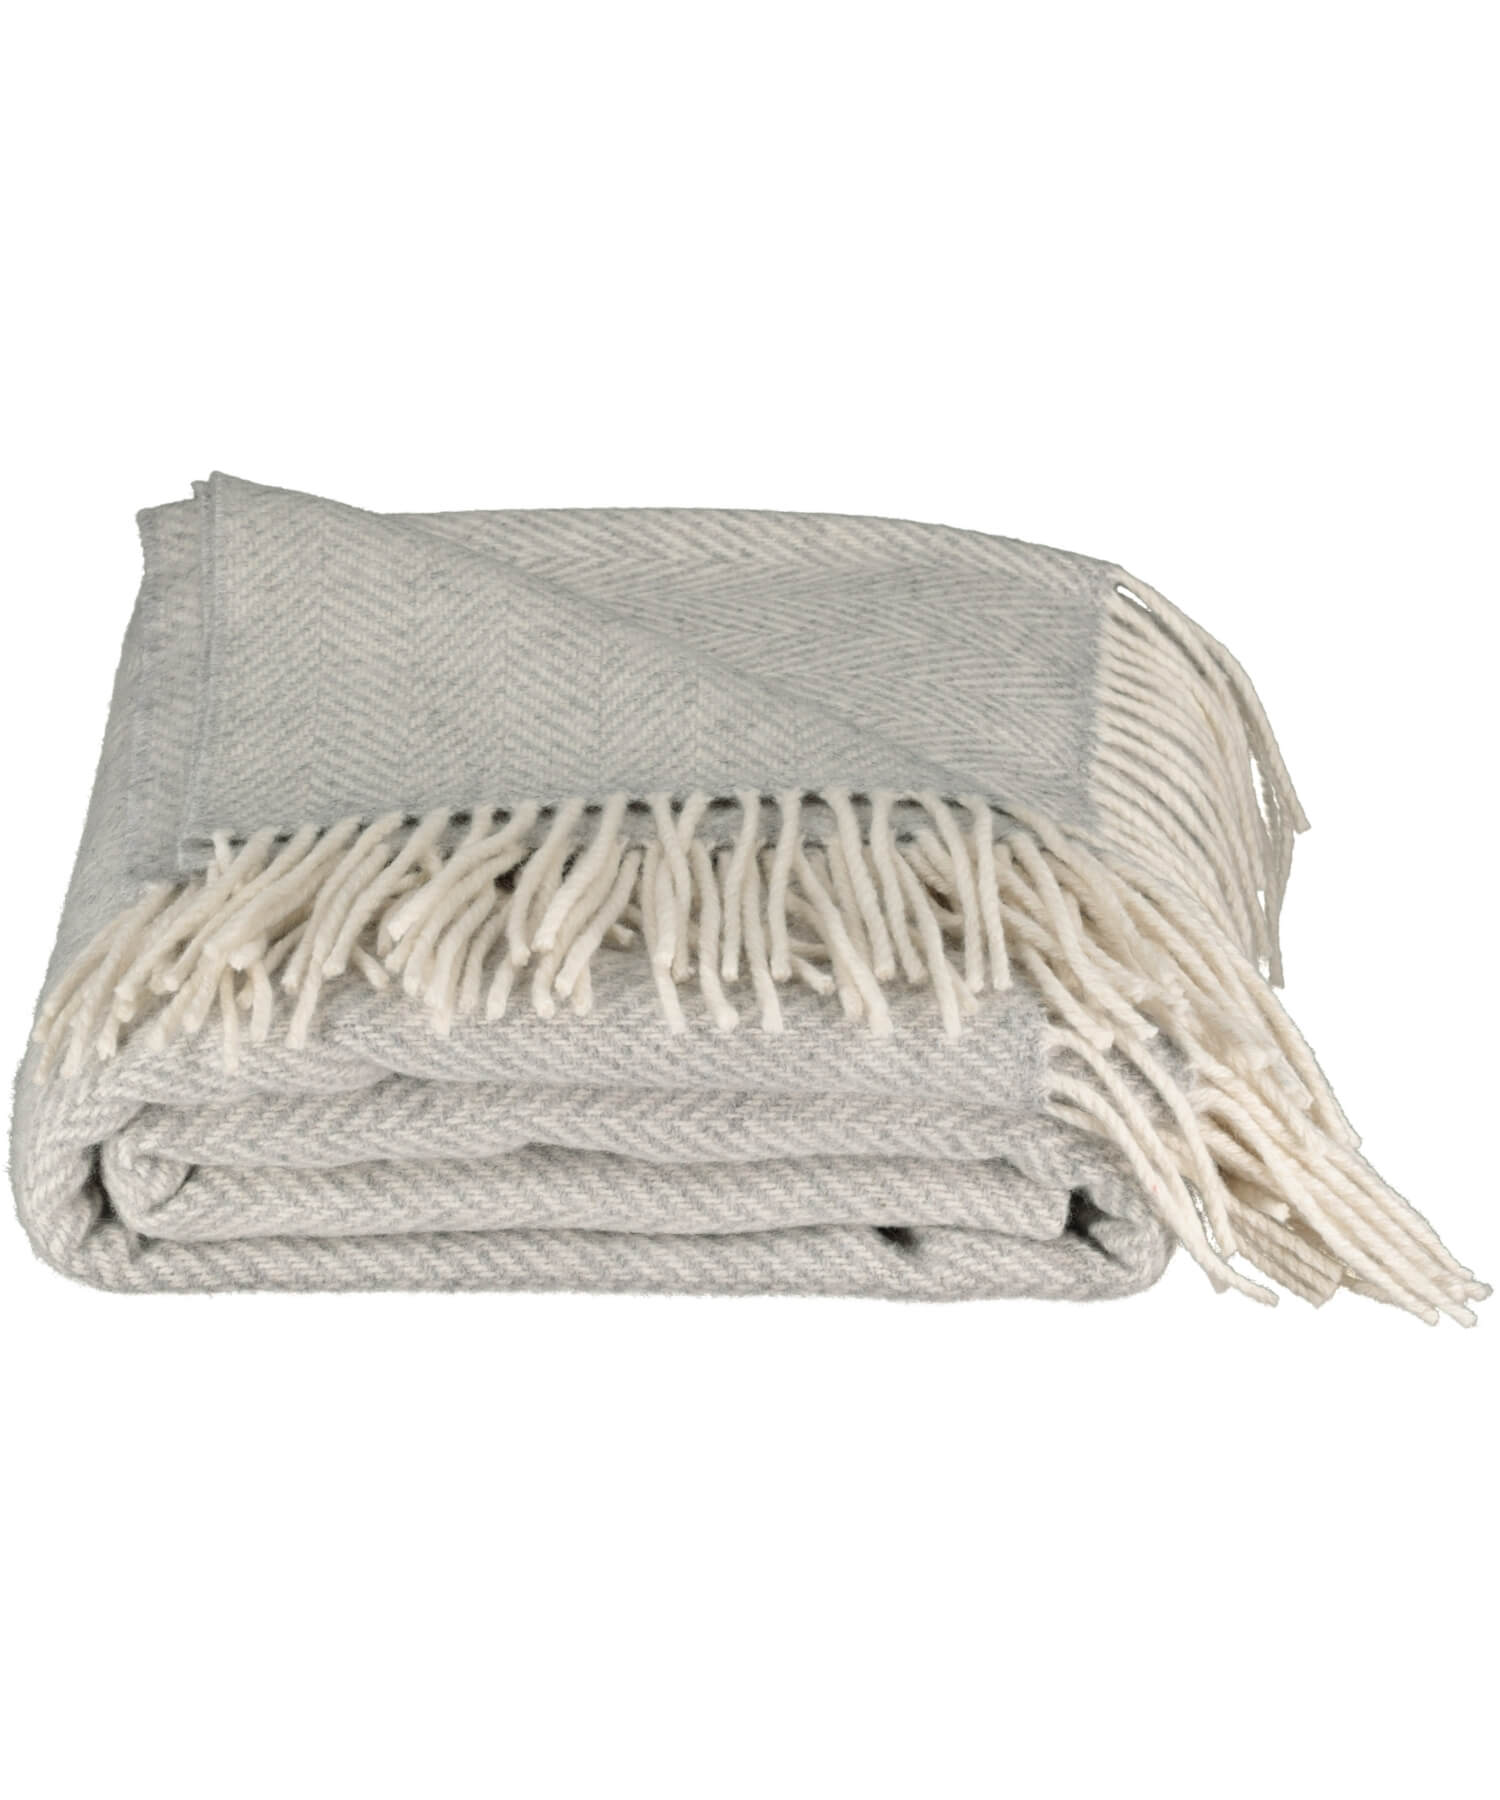 Luxury - Pearl Grey Herringbone Throw - [Foxford] - Throws & Cushions - Irish Gifts